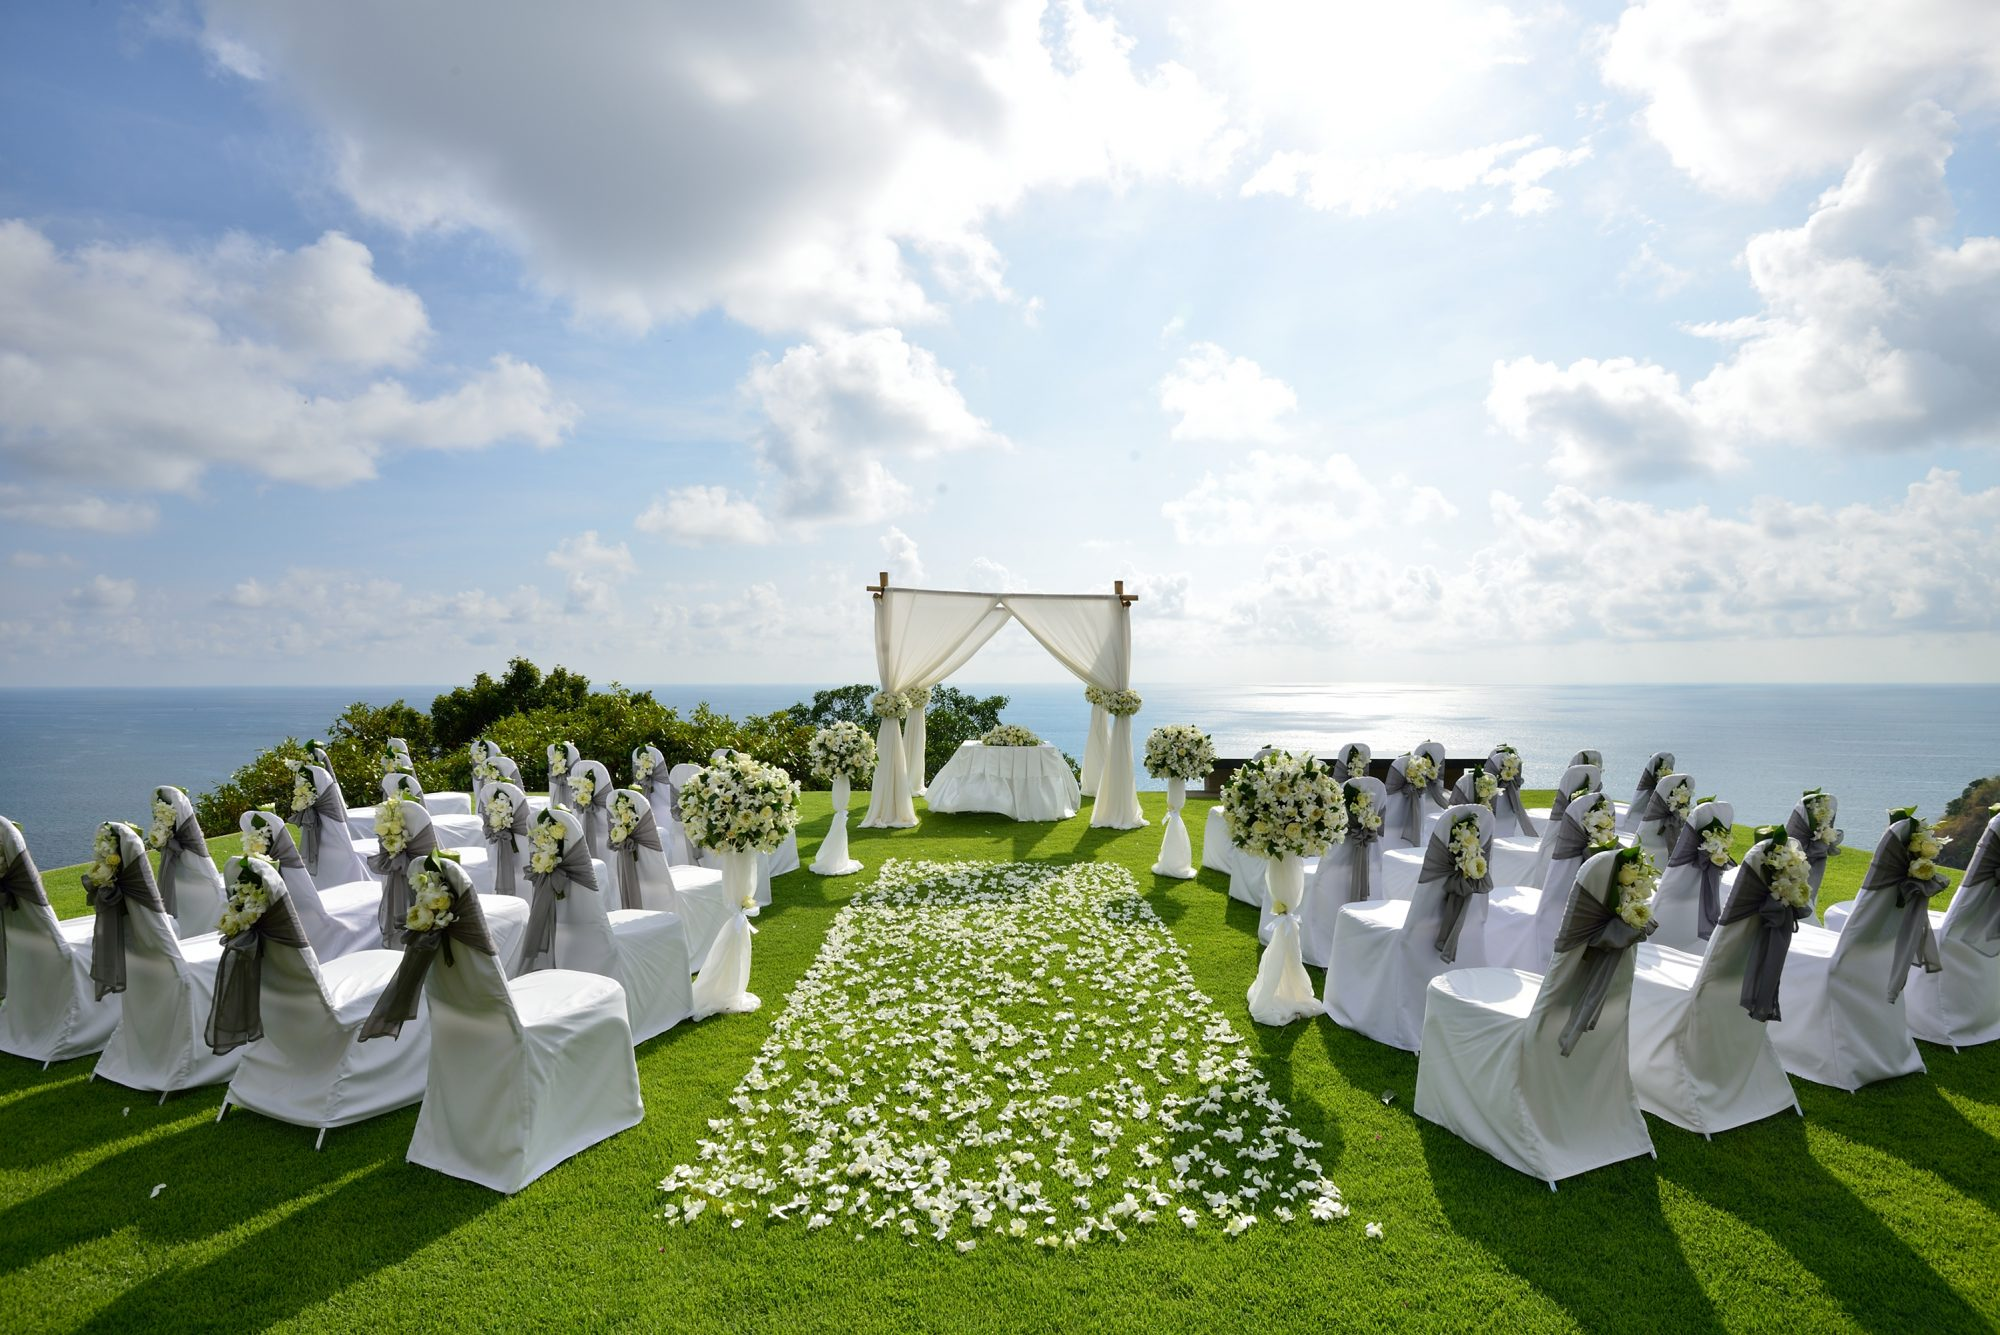 Wedding on a hill overlooking the ocean